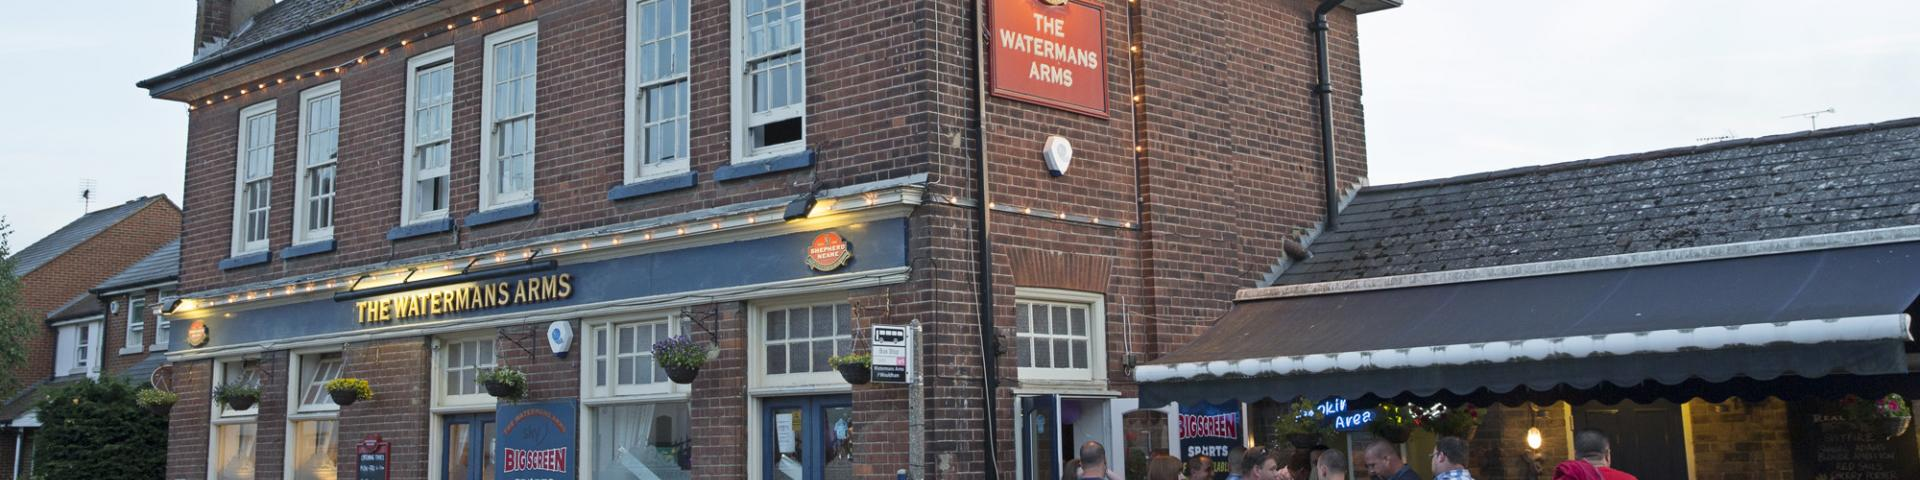 Contact the Watermans Arms Wouldham